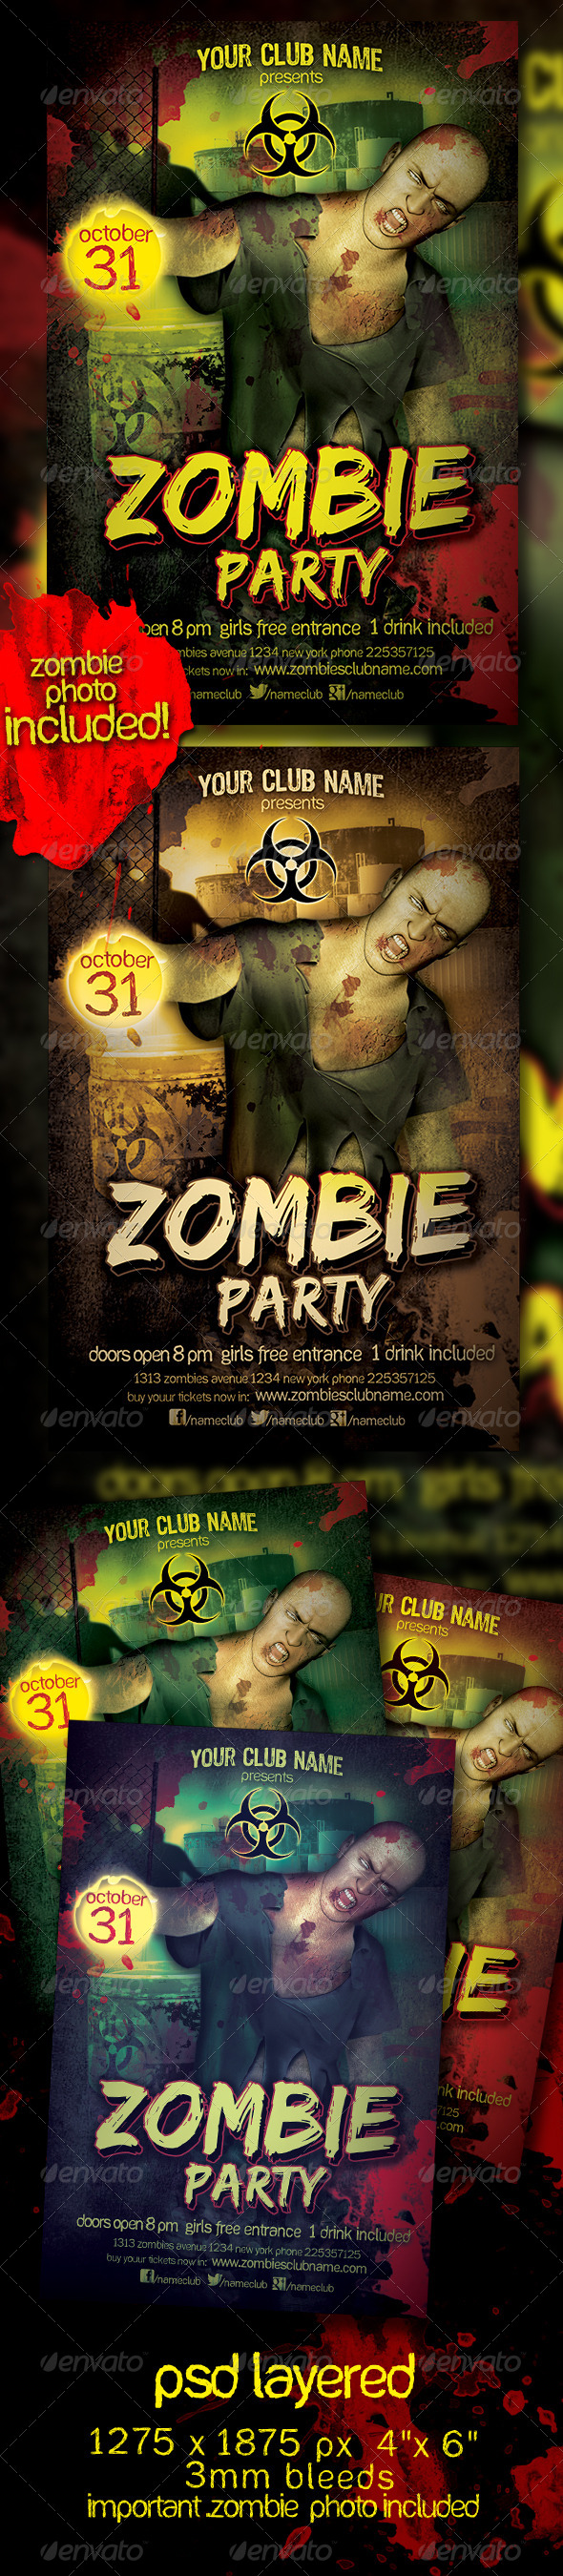 Zombie Party Flyer Template | Zombie party, Party flyer and Flyer ...